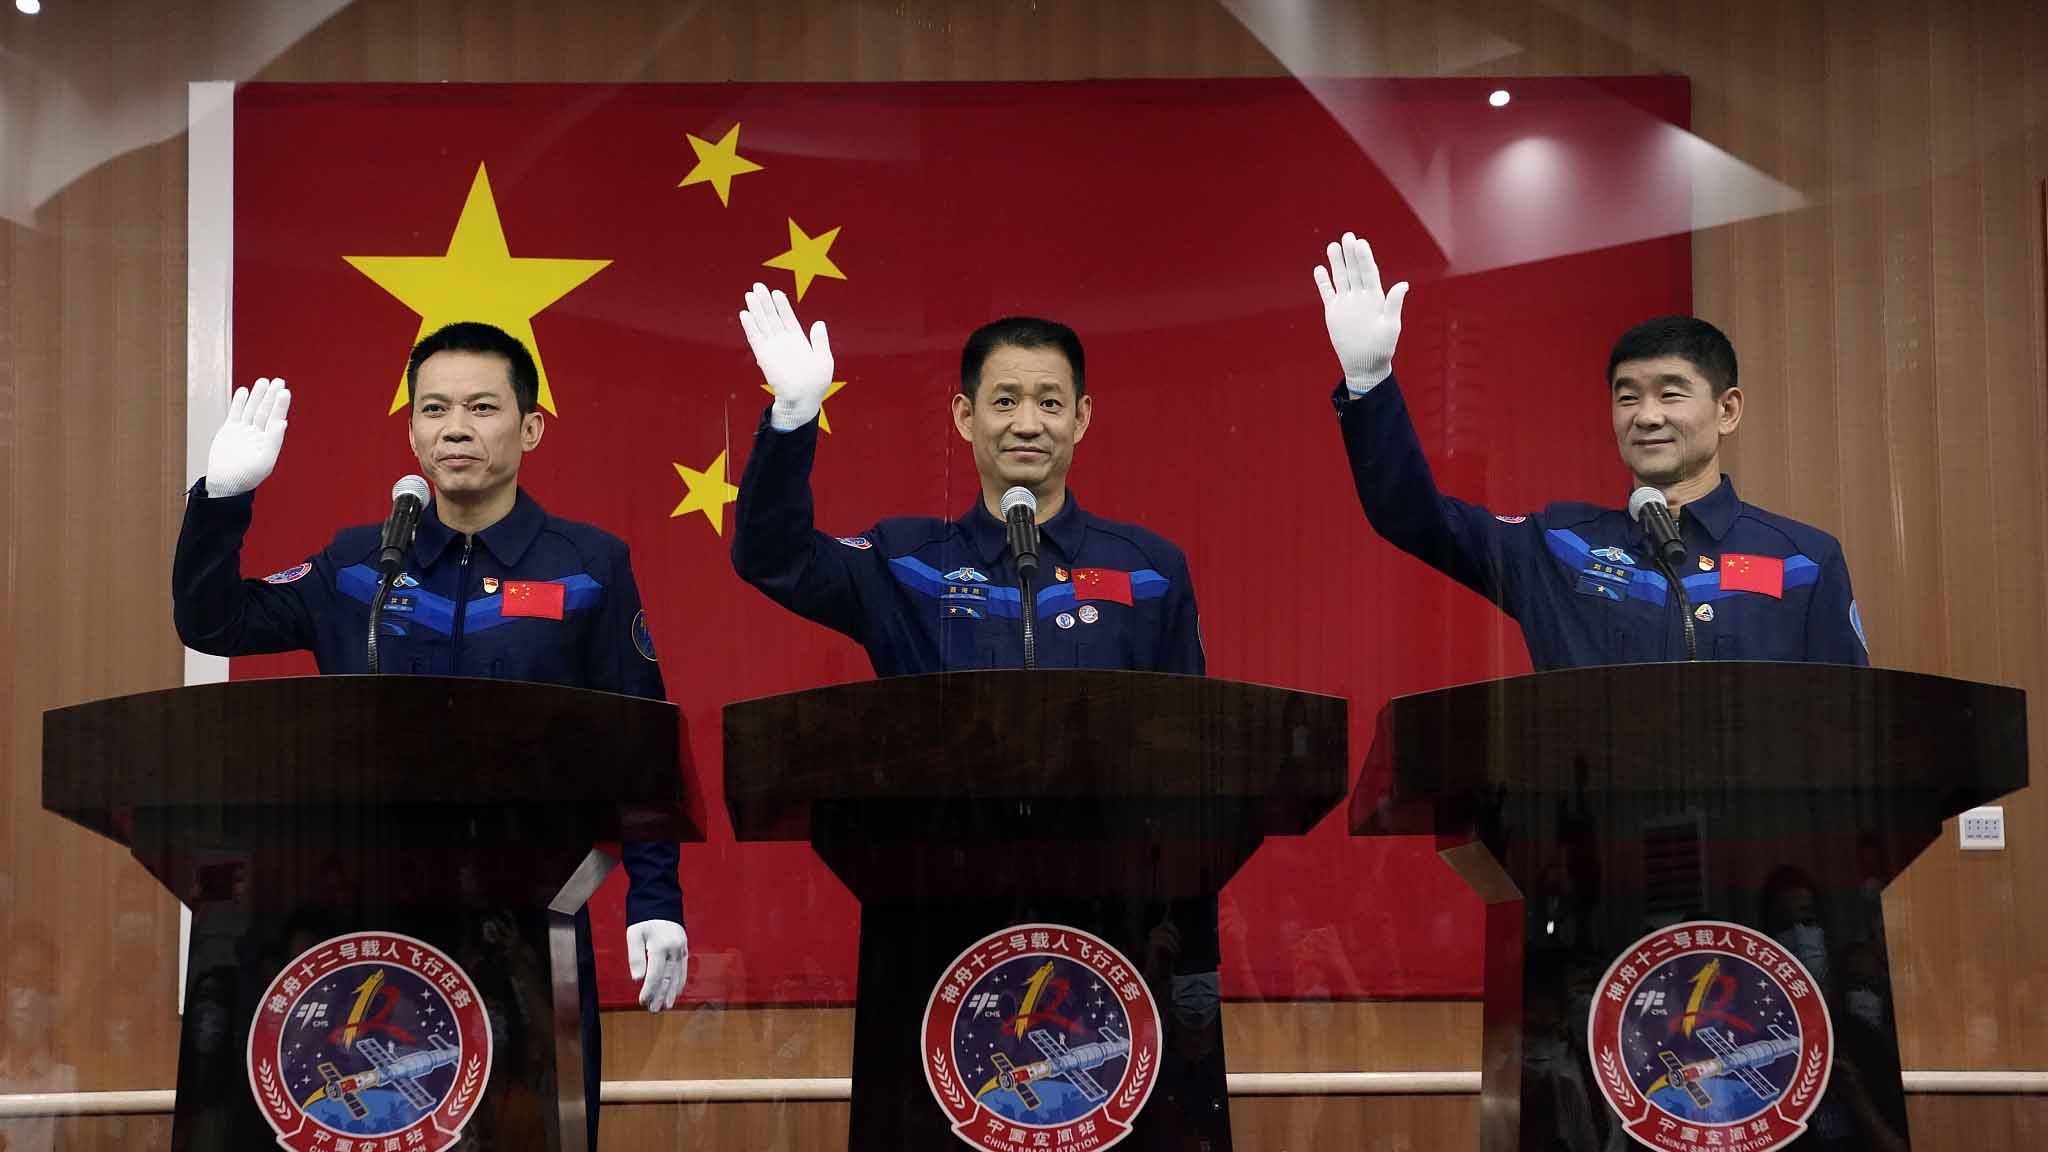 China Names 3 Astronauts for Next Human Spaceflight Mission on Shenzhou 12 Launching June 17 to New Space Station